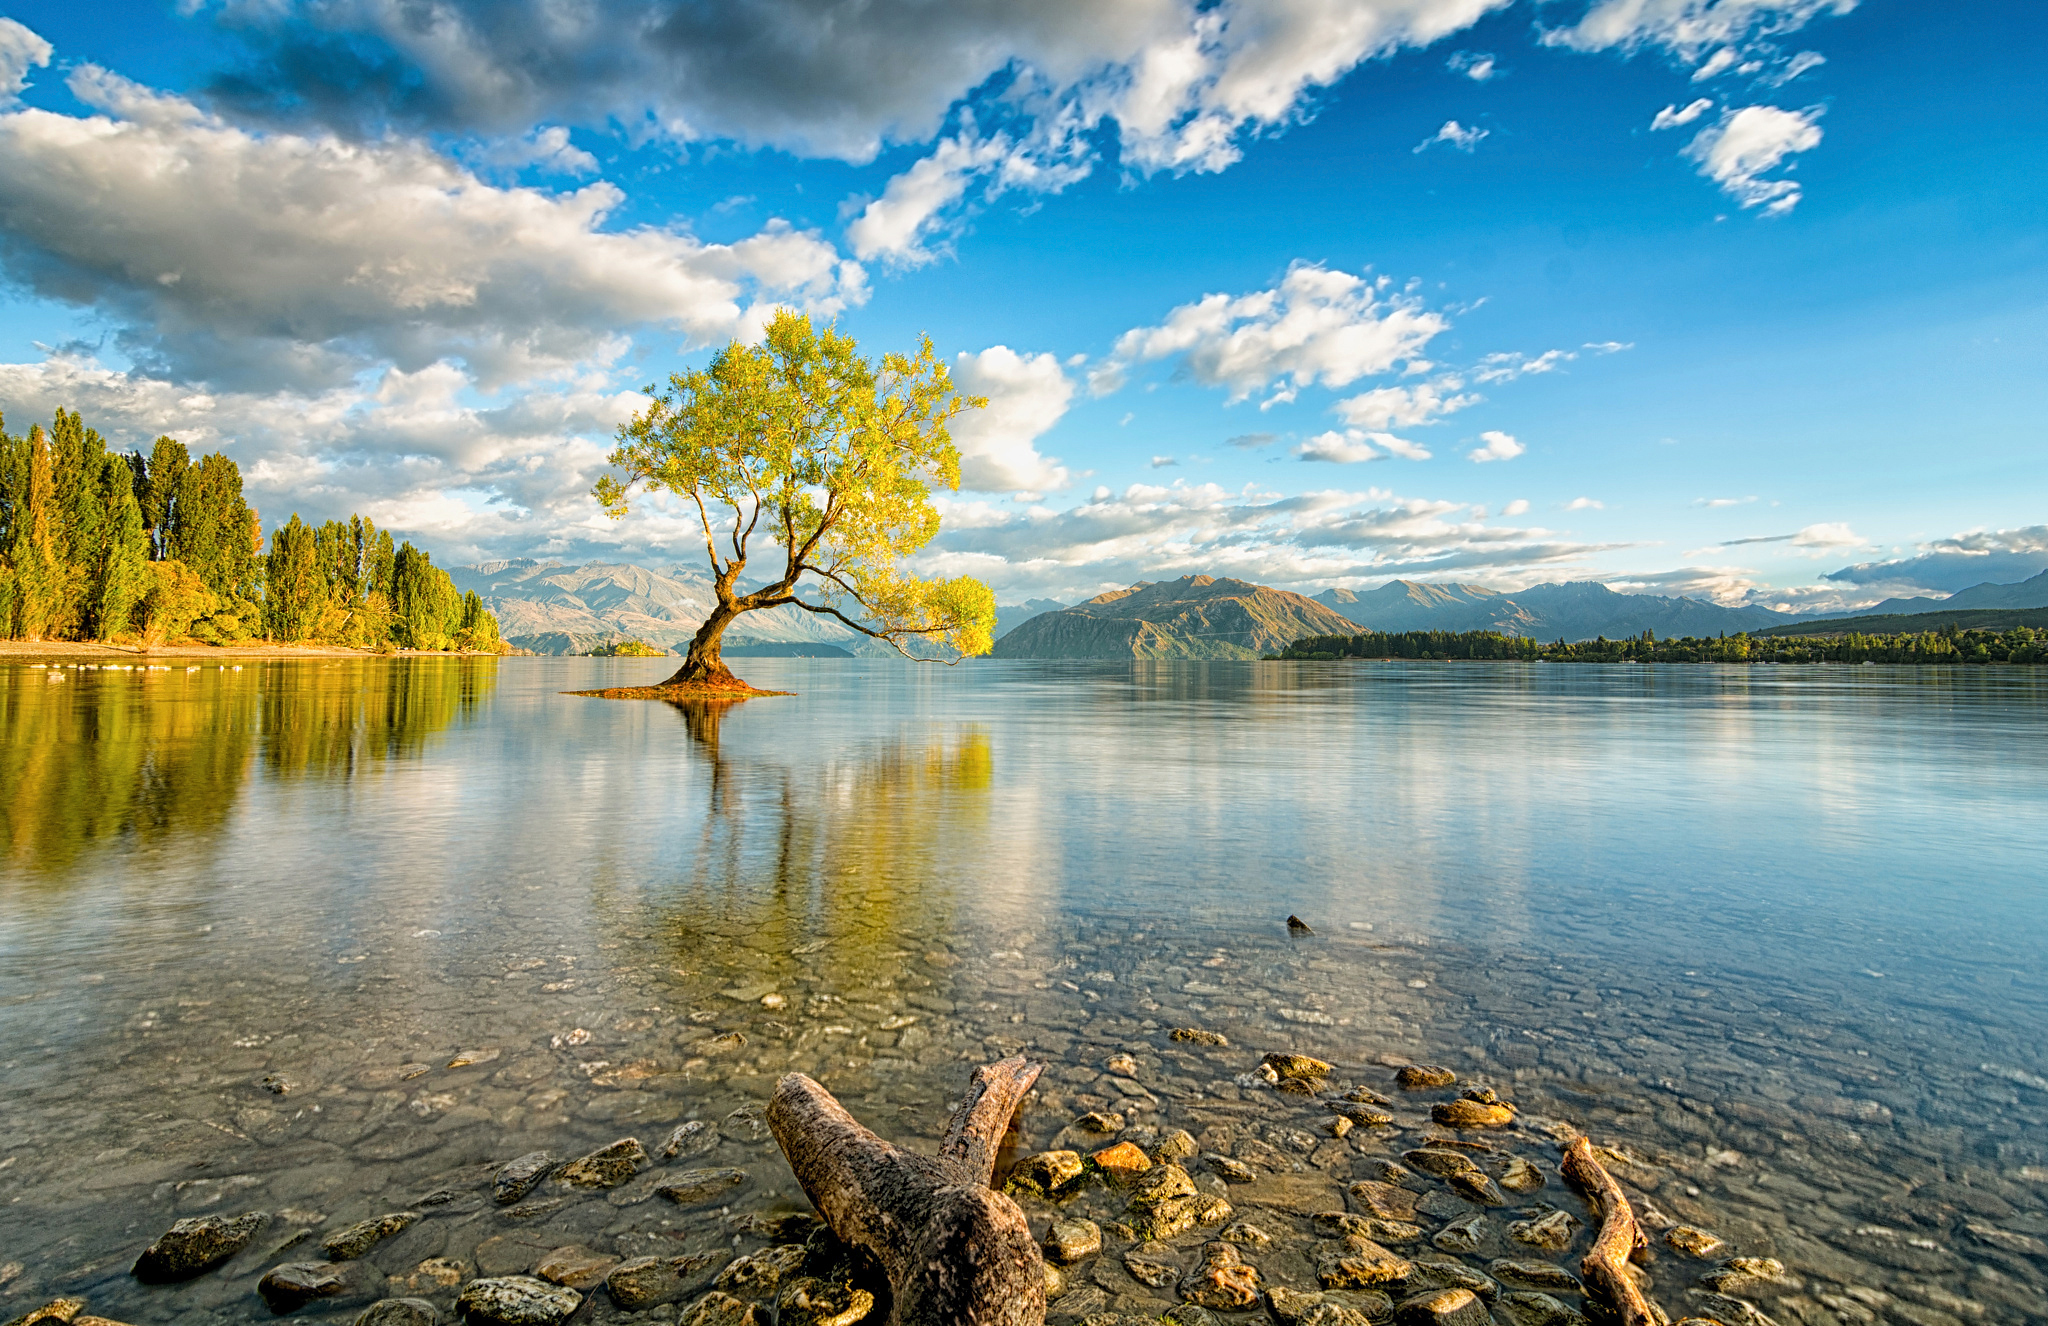 50812 download wallpaper Nature, Lake, New Zealand, Island, Wanaka screensavers and pictures for free